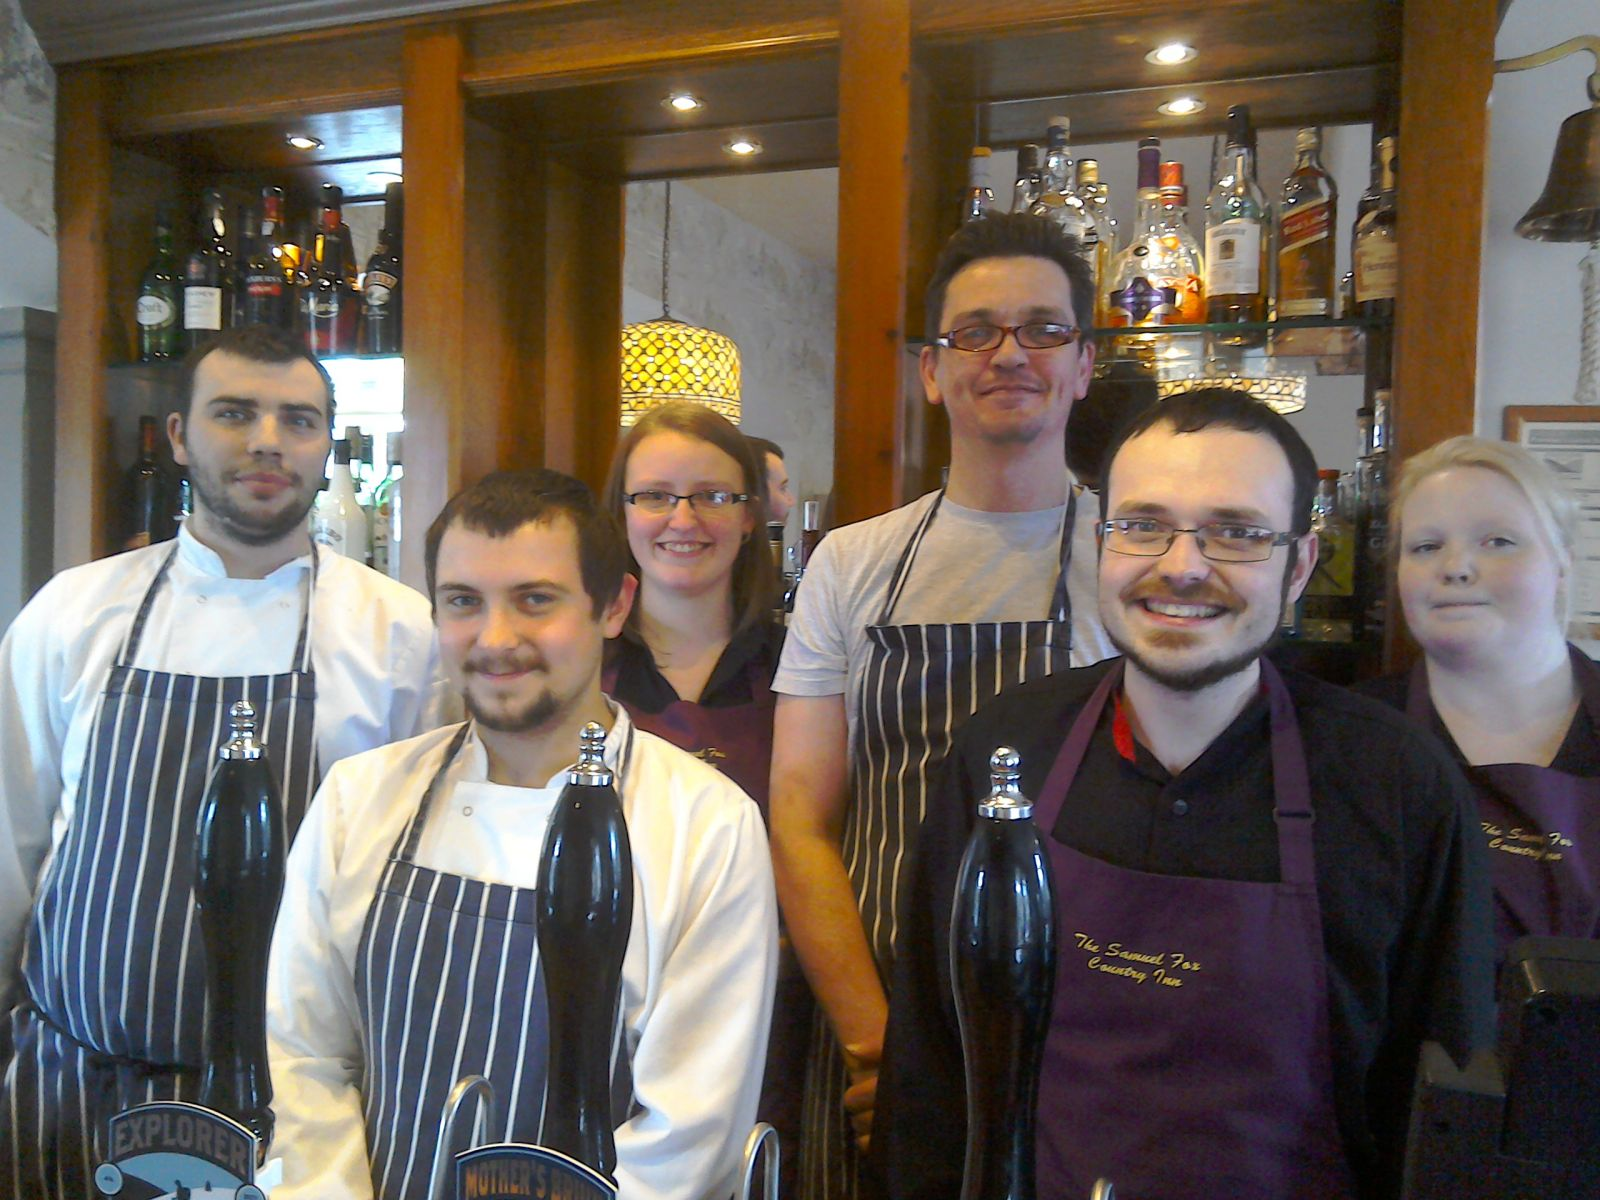 A warm welcome awaits you in the bar, retaurant and hotel